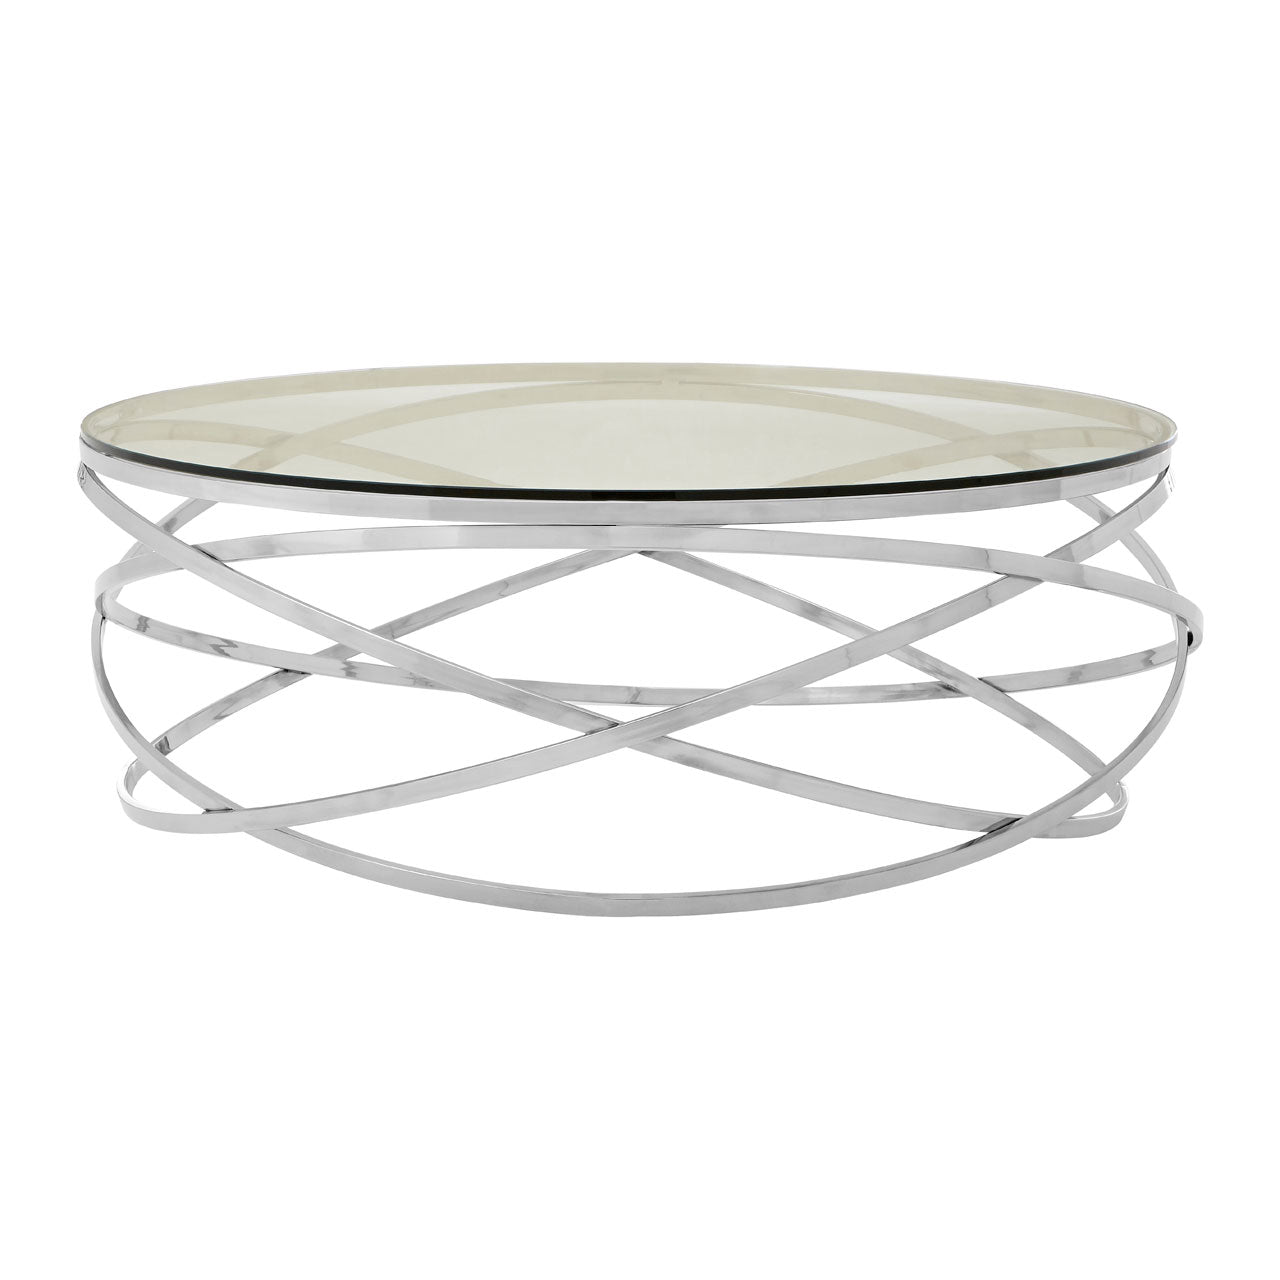 Allure Round Coffee Table Stainless Steel - Ezzo